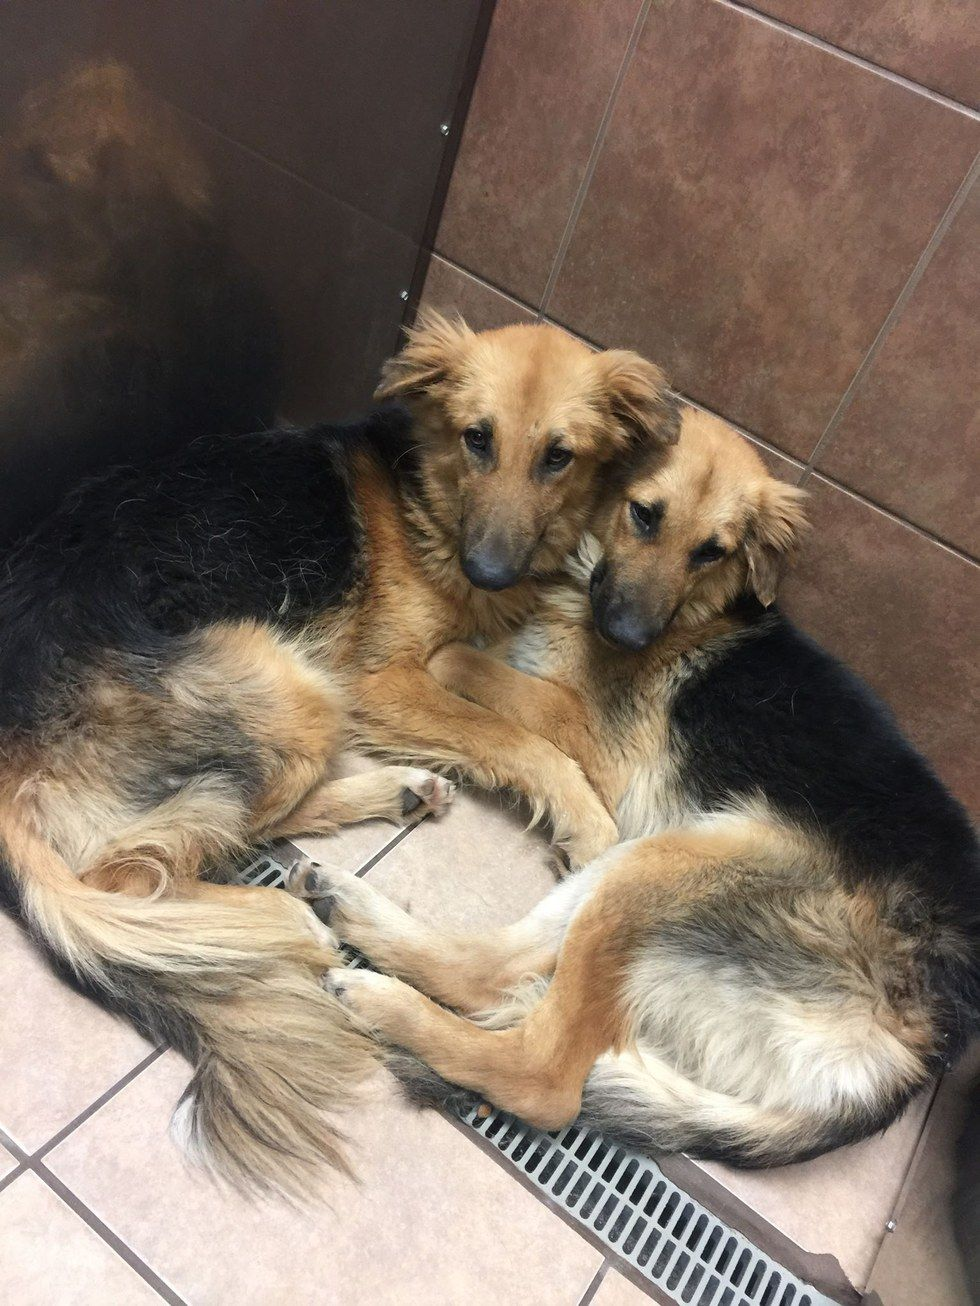 Dog Best Friends Hug Each Other After Being Dumped At Shelter - These two stray puppies were just rescued and they refuse to stop hugging each other